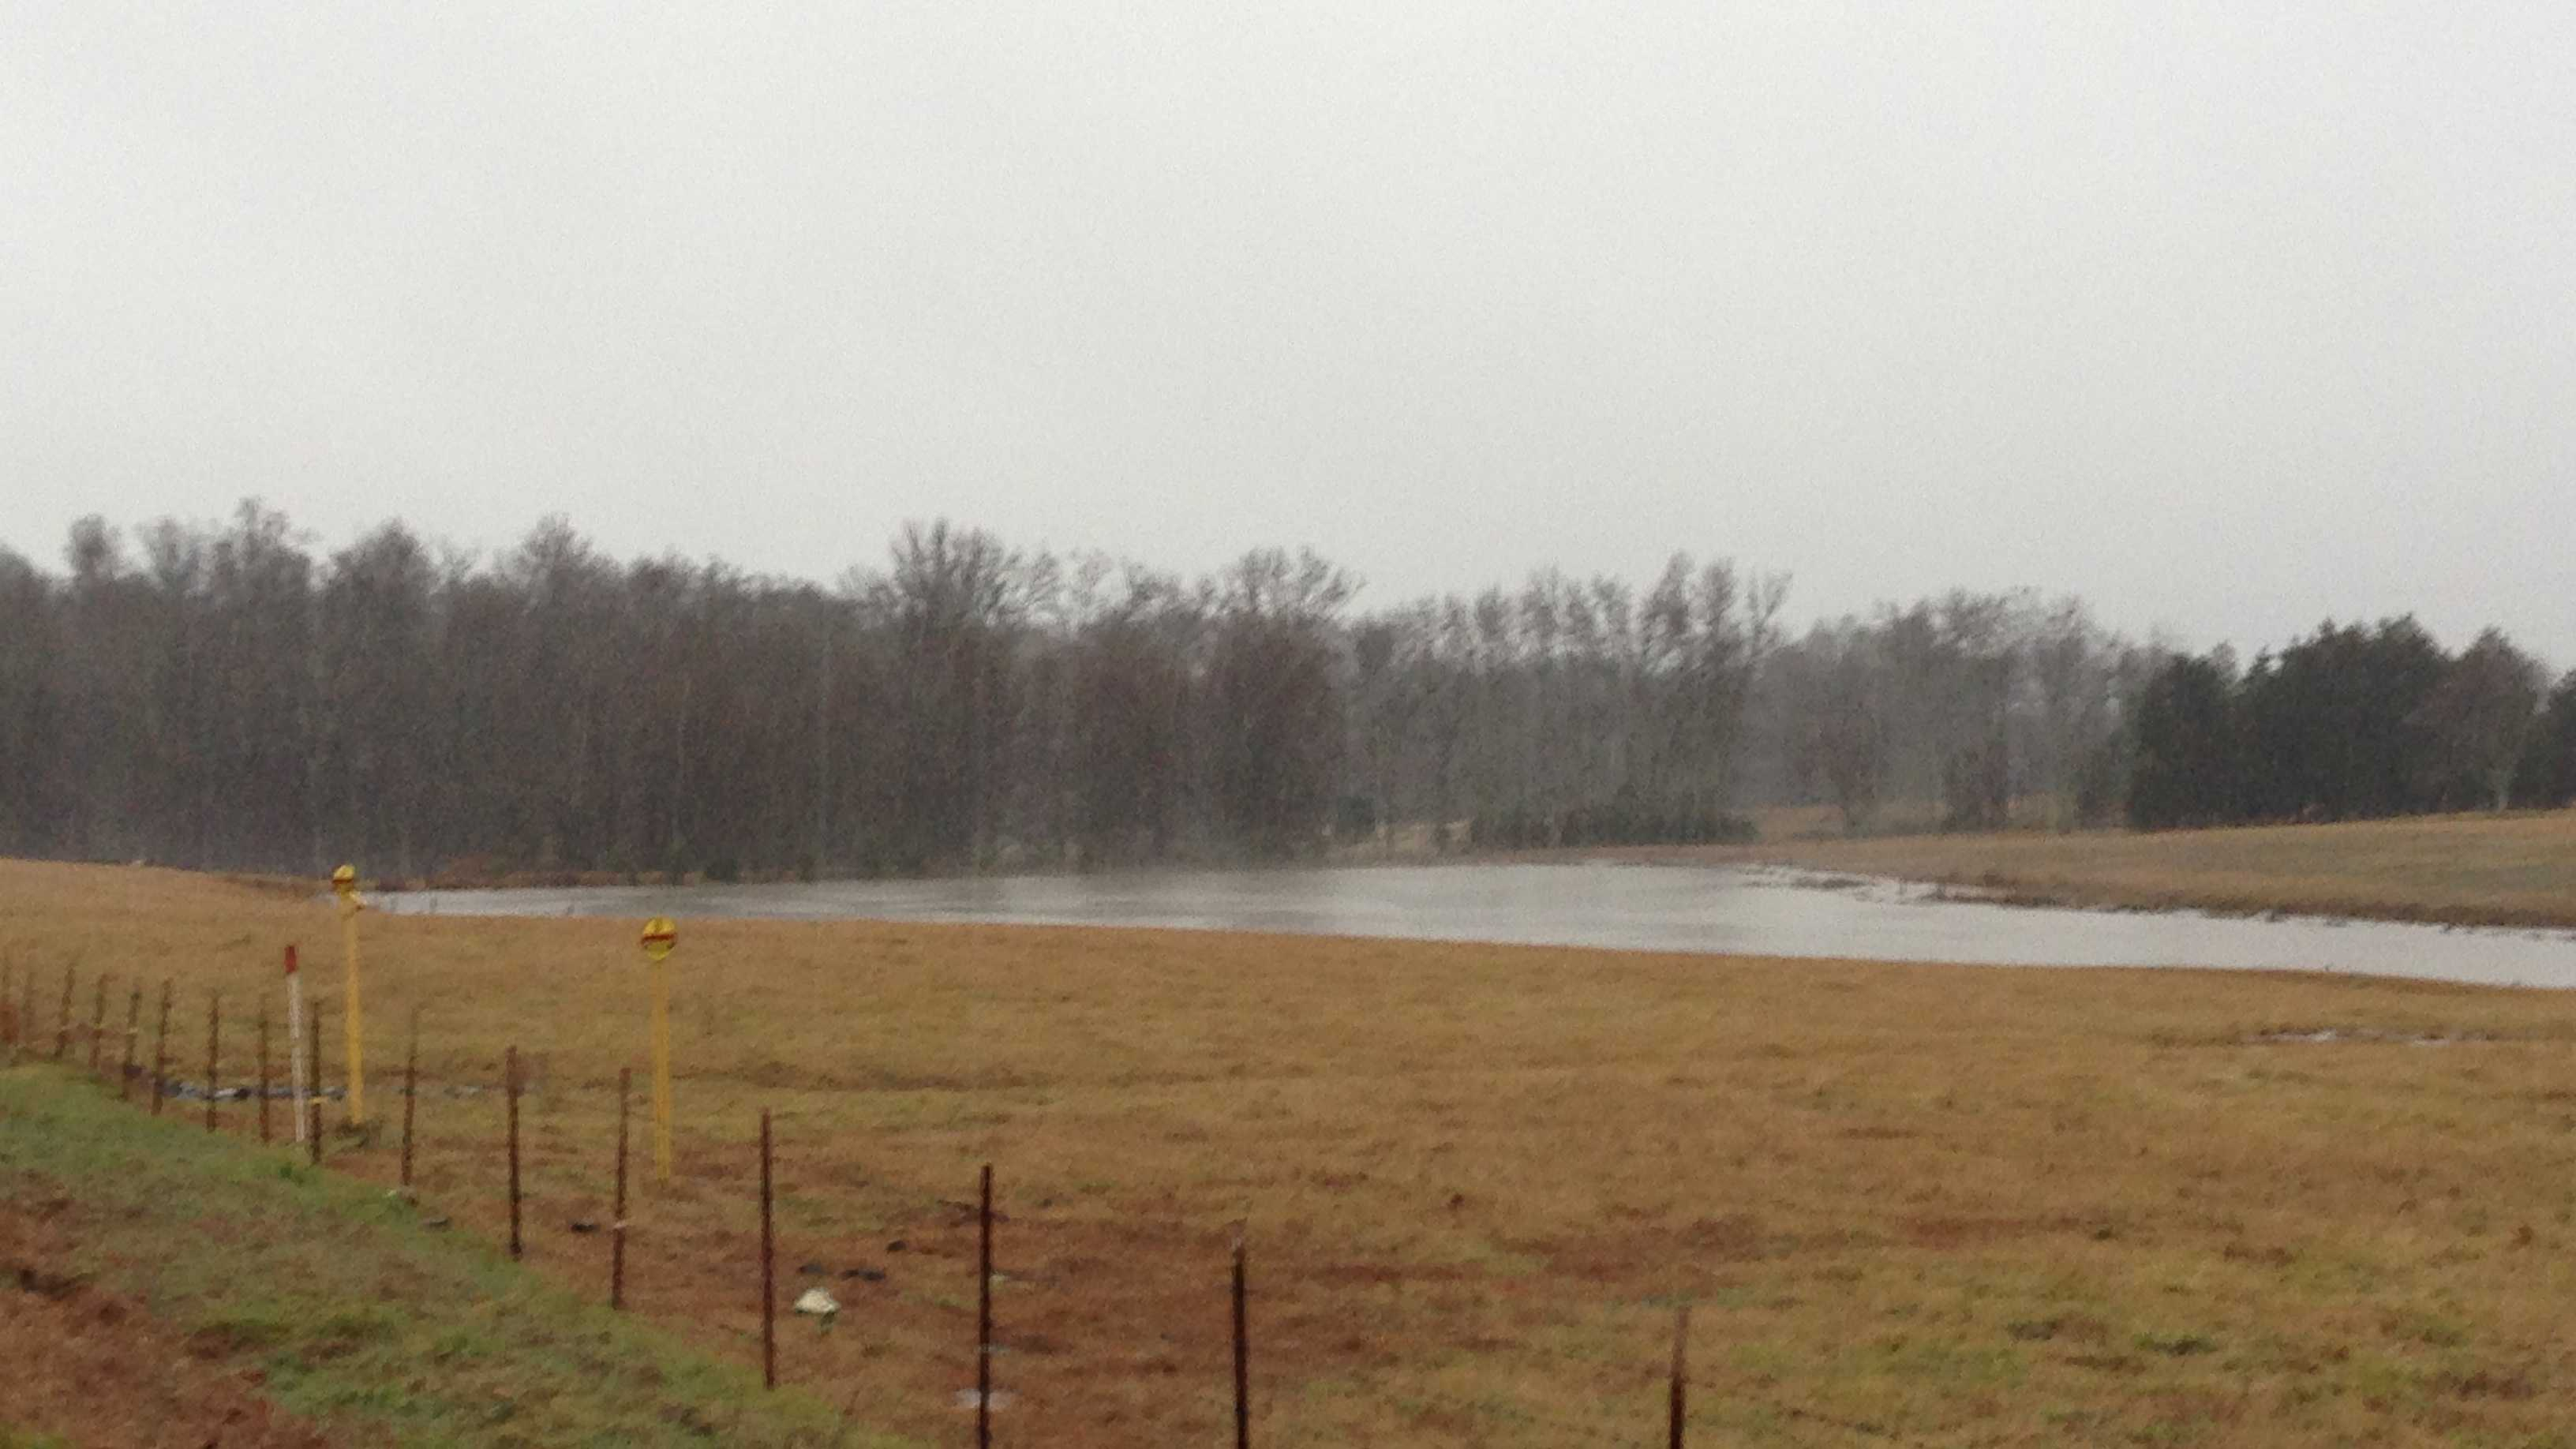 Photojournalist Aric Lavender captured this soggy field in the Simpsonville area off Harrison Bridge Road.